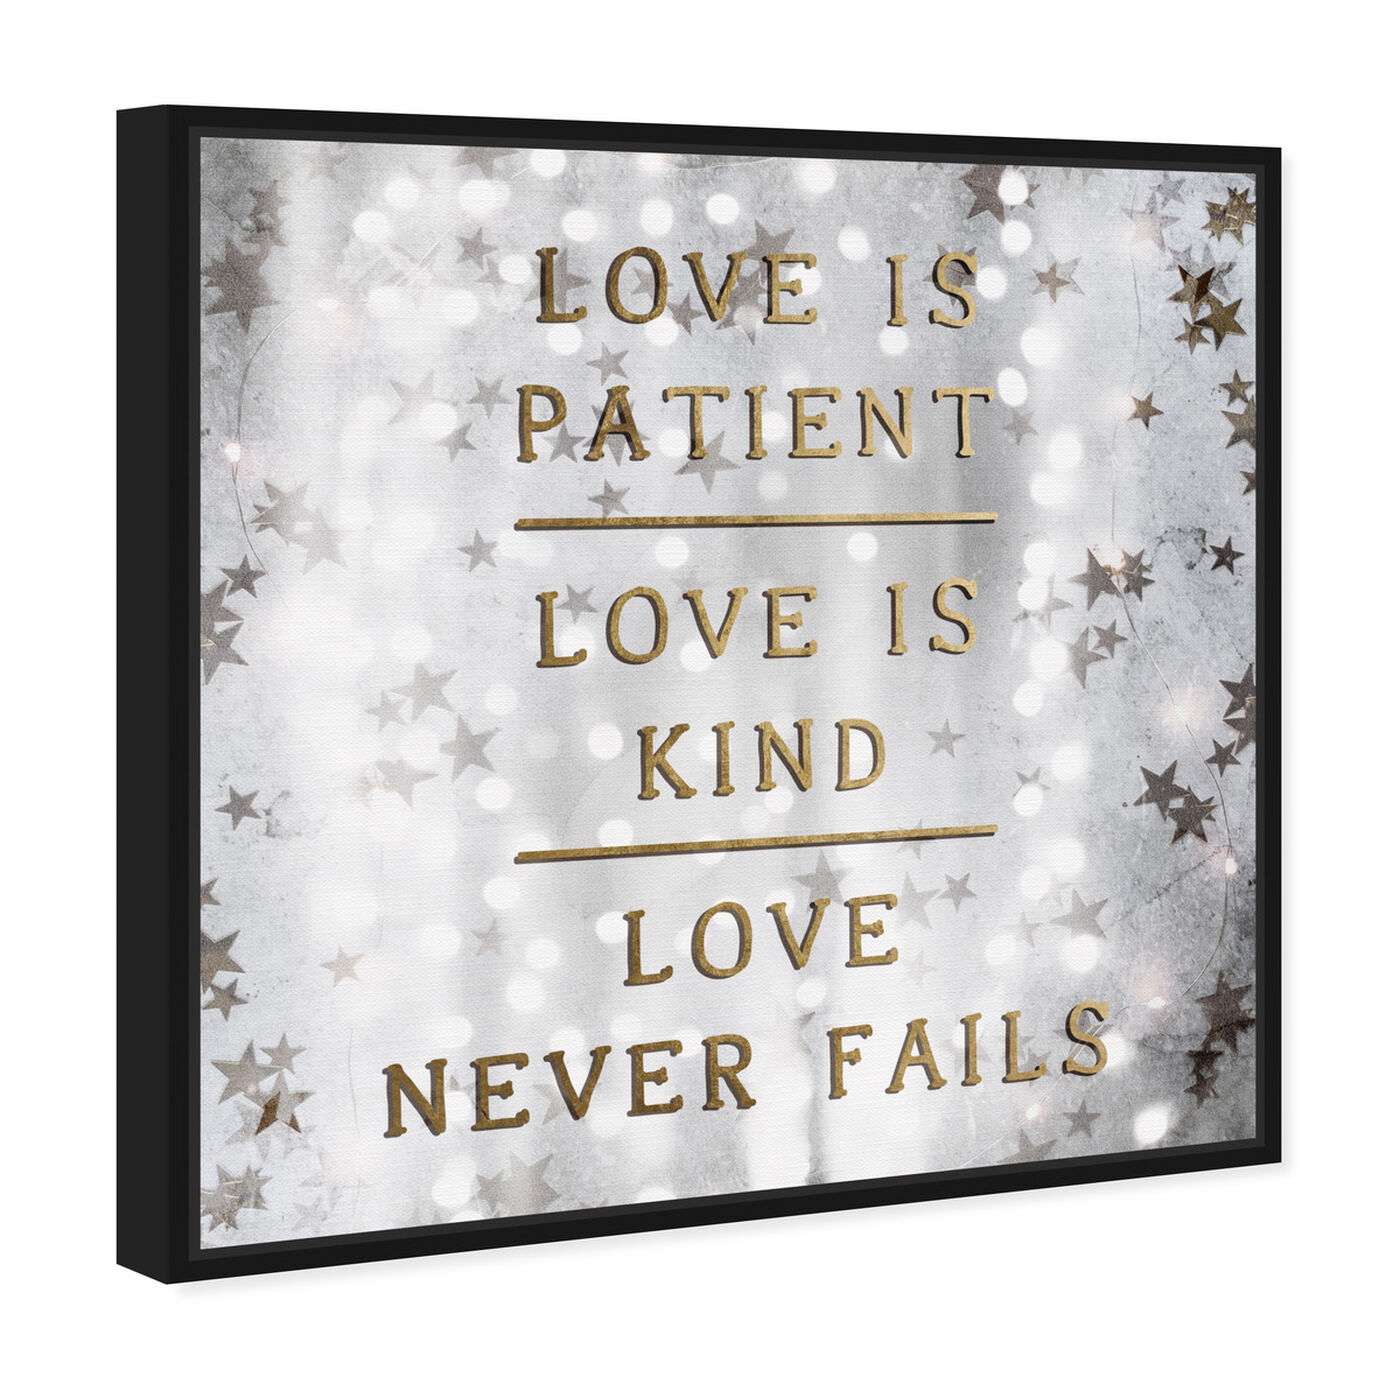 Angled view of Love is Patient Love is Kind featuring typography and quotes and love quotes and sayings art.